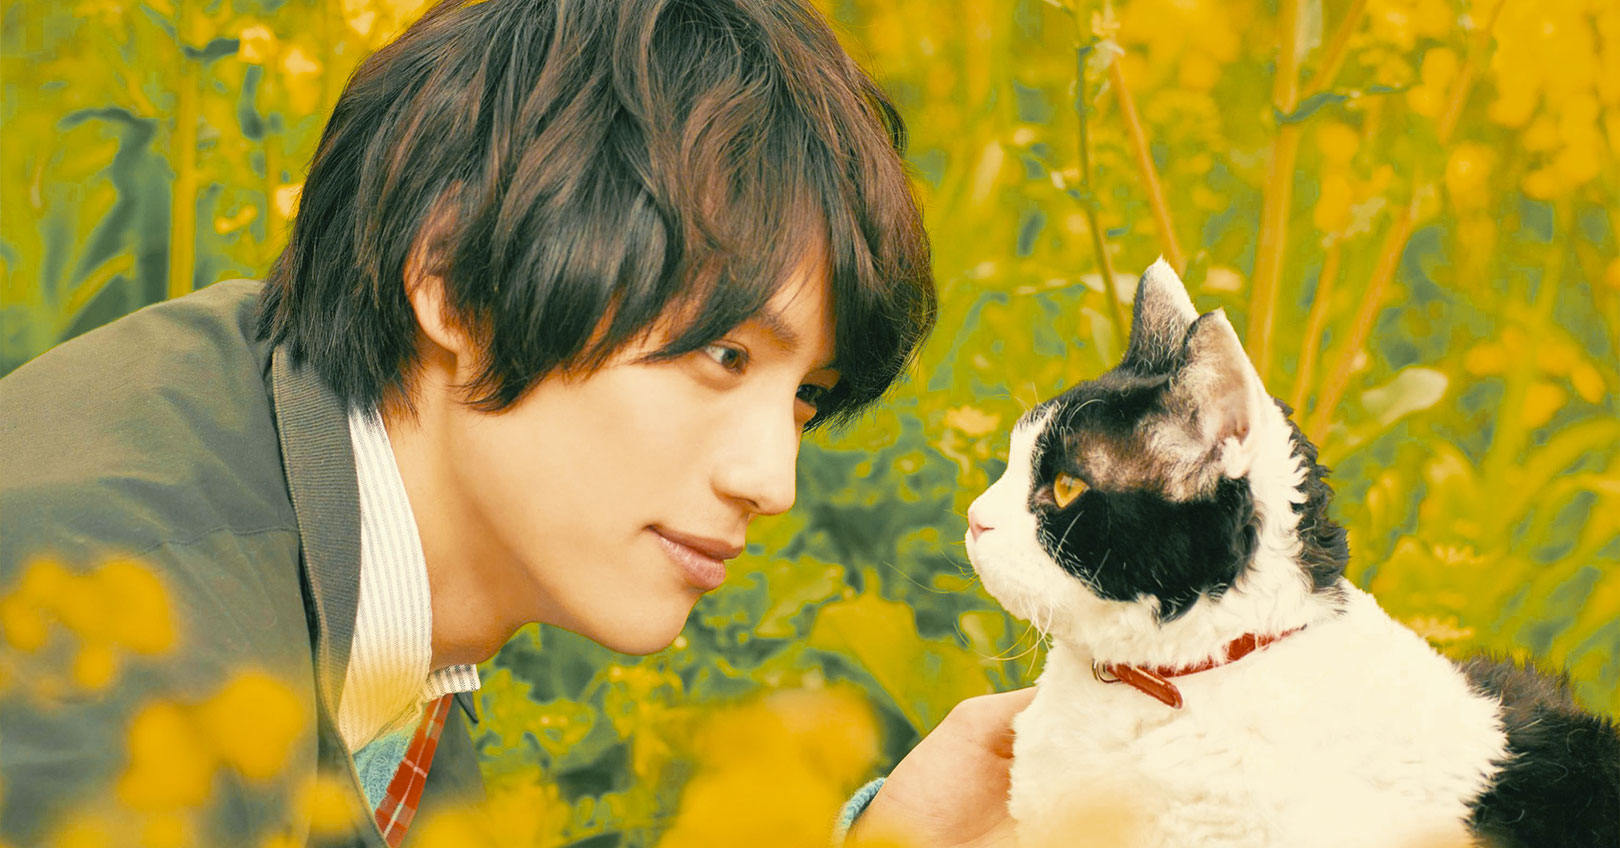 The Travelling Cat Chronicles - Sota Fukushi